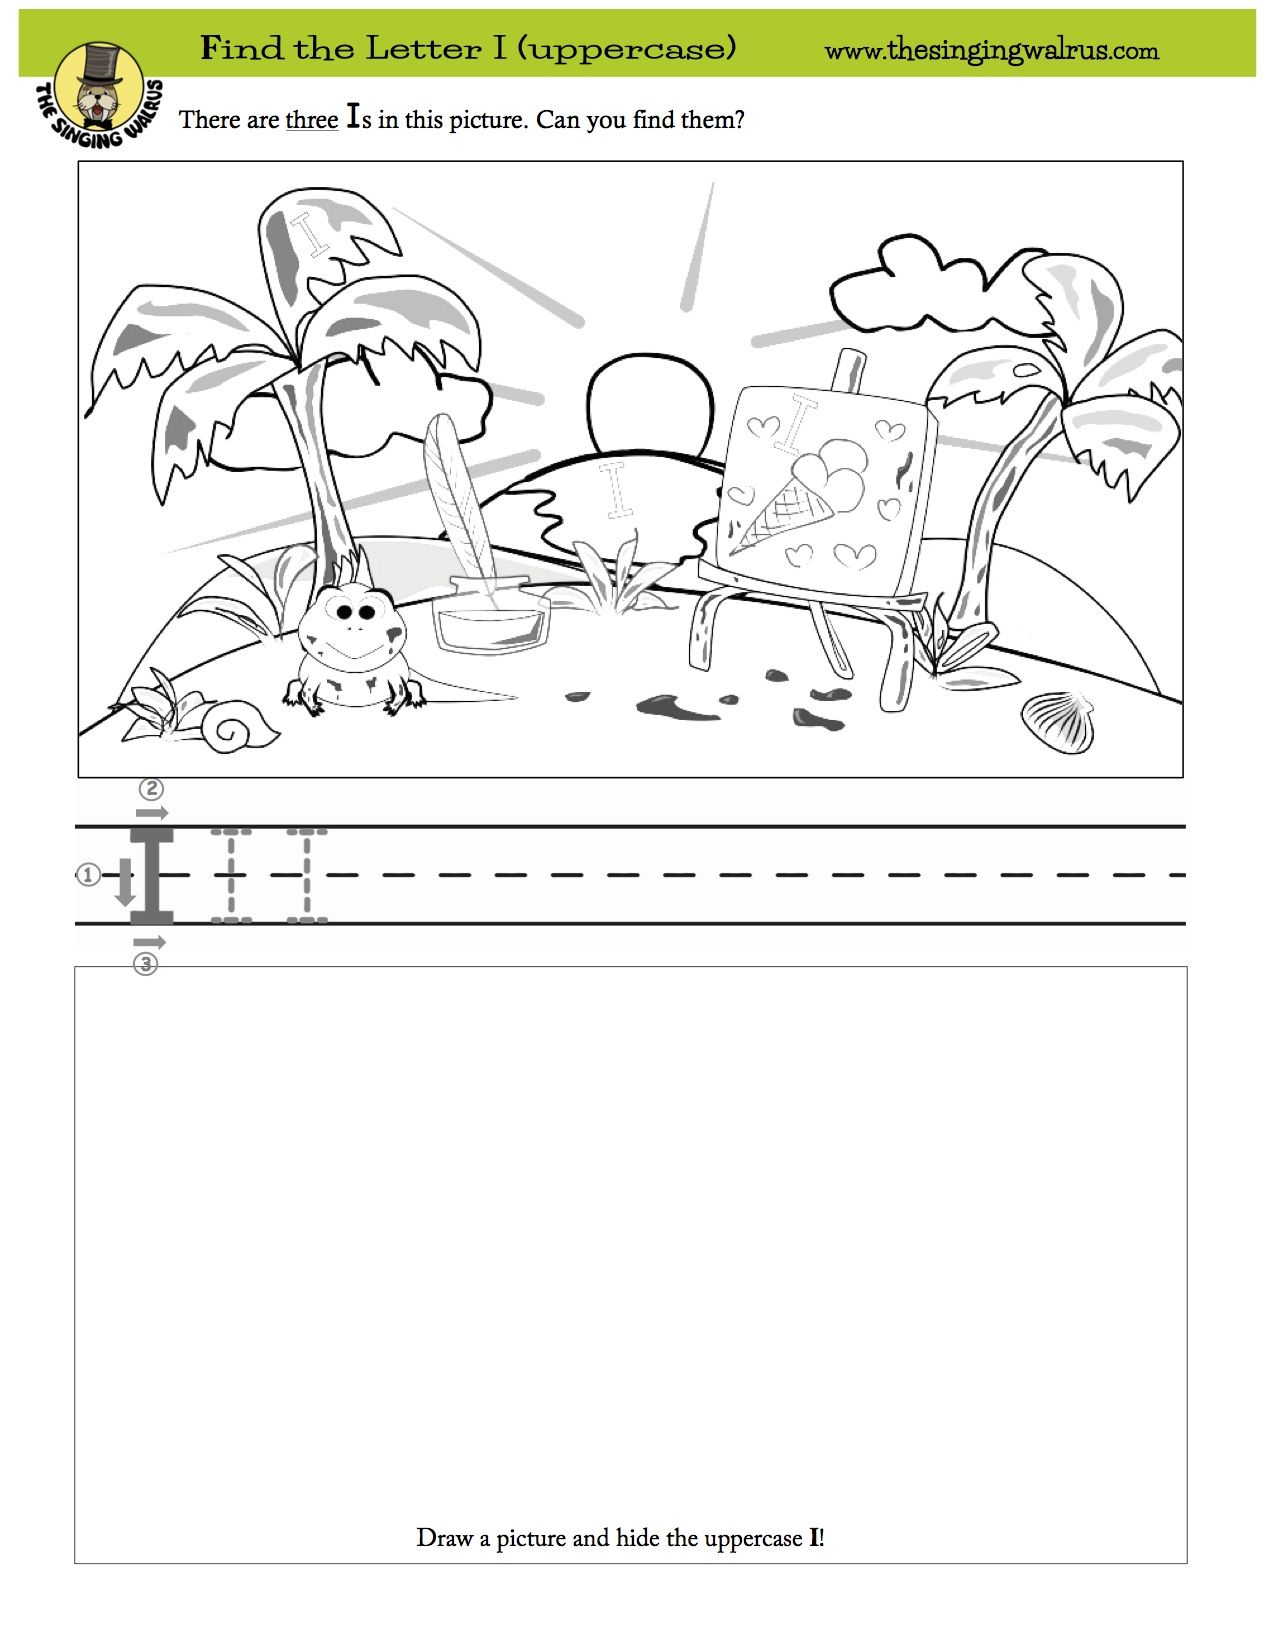 An Iguana On An Island Doing An Illustration Of Ice Cream Can You Spot The Hidden Letter I In